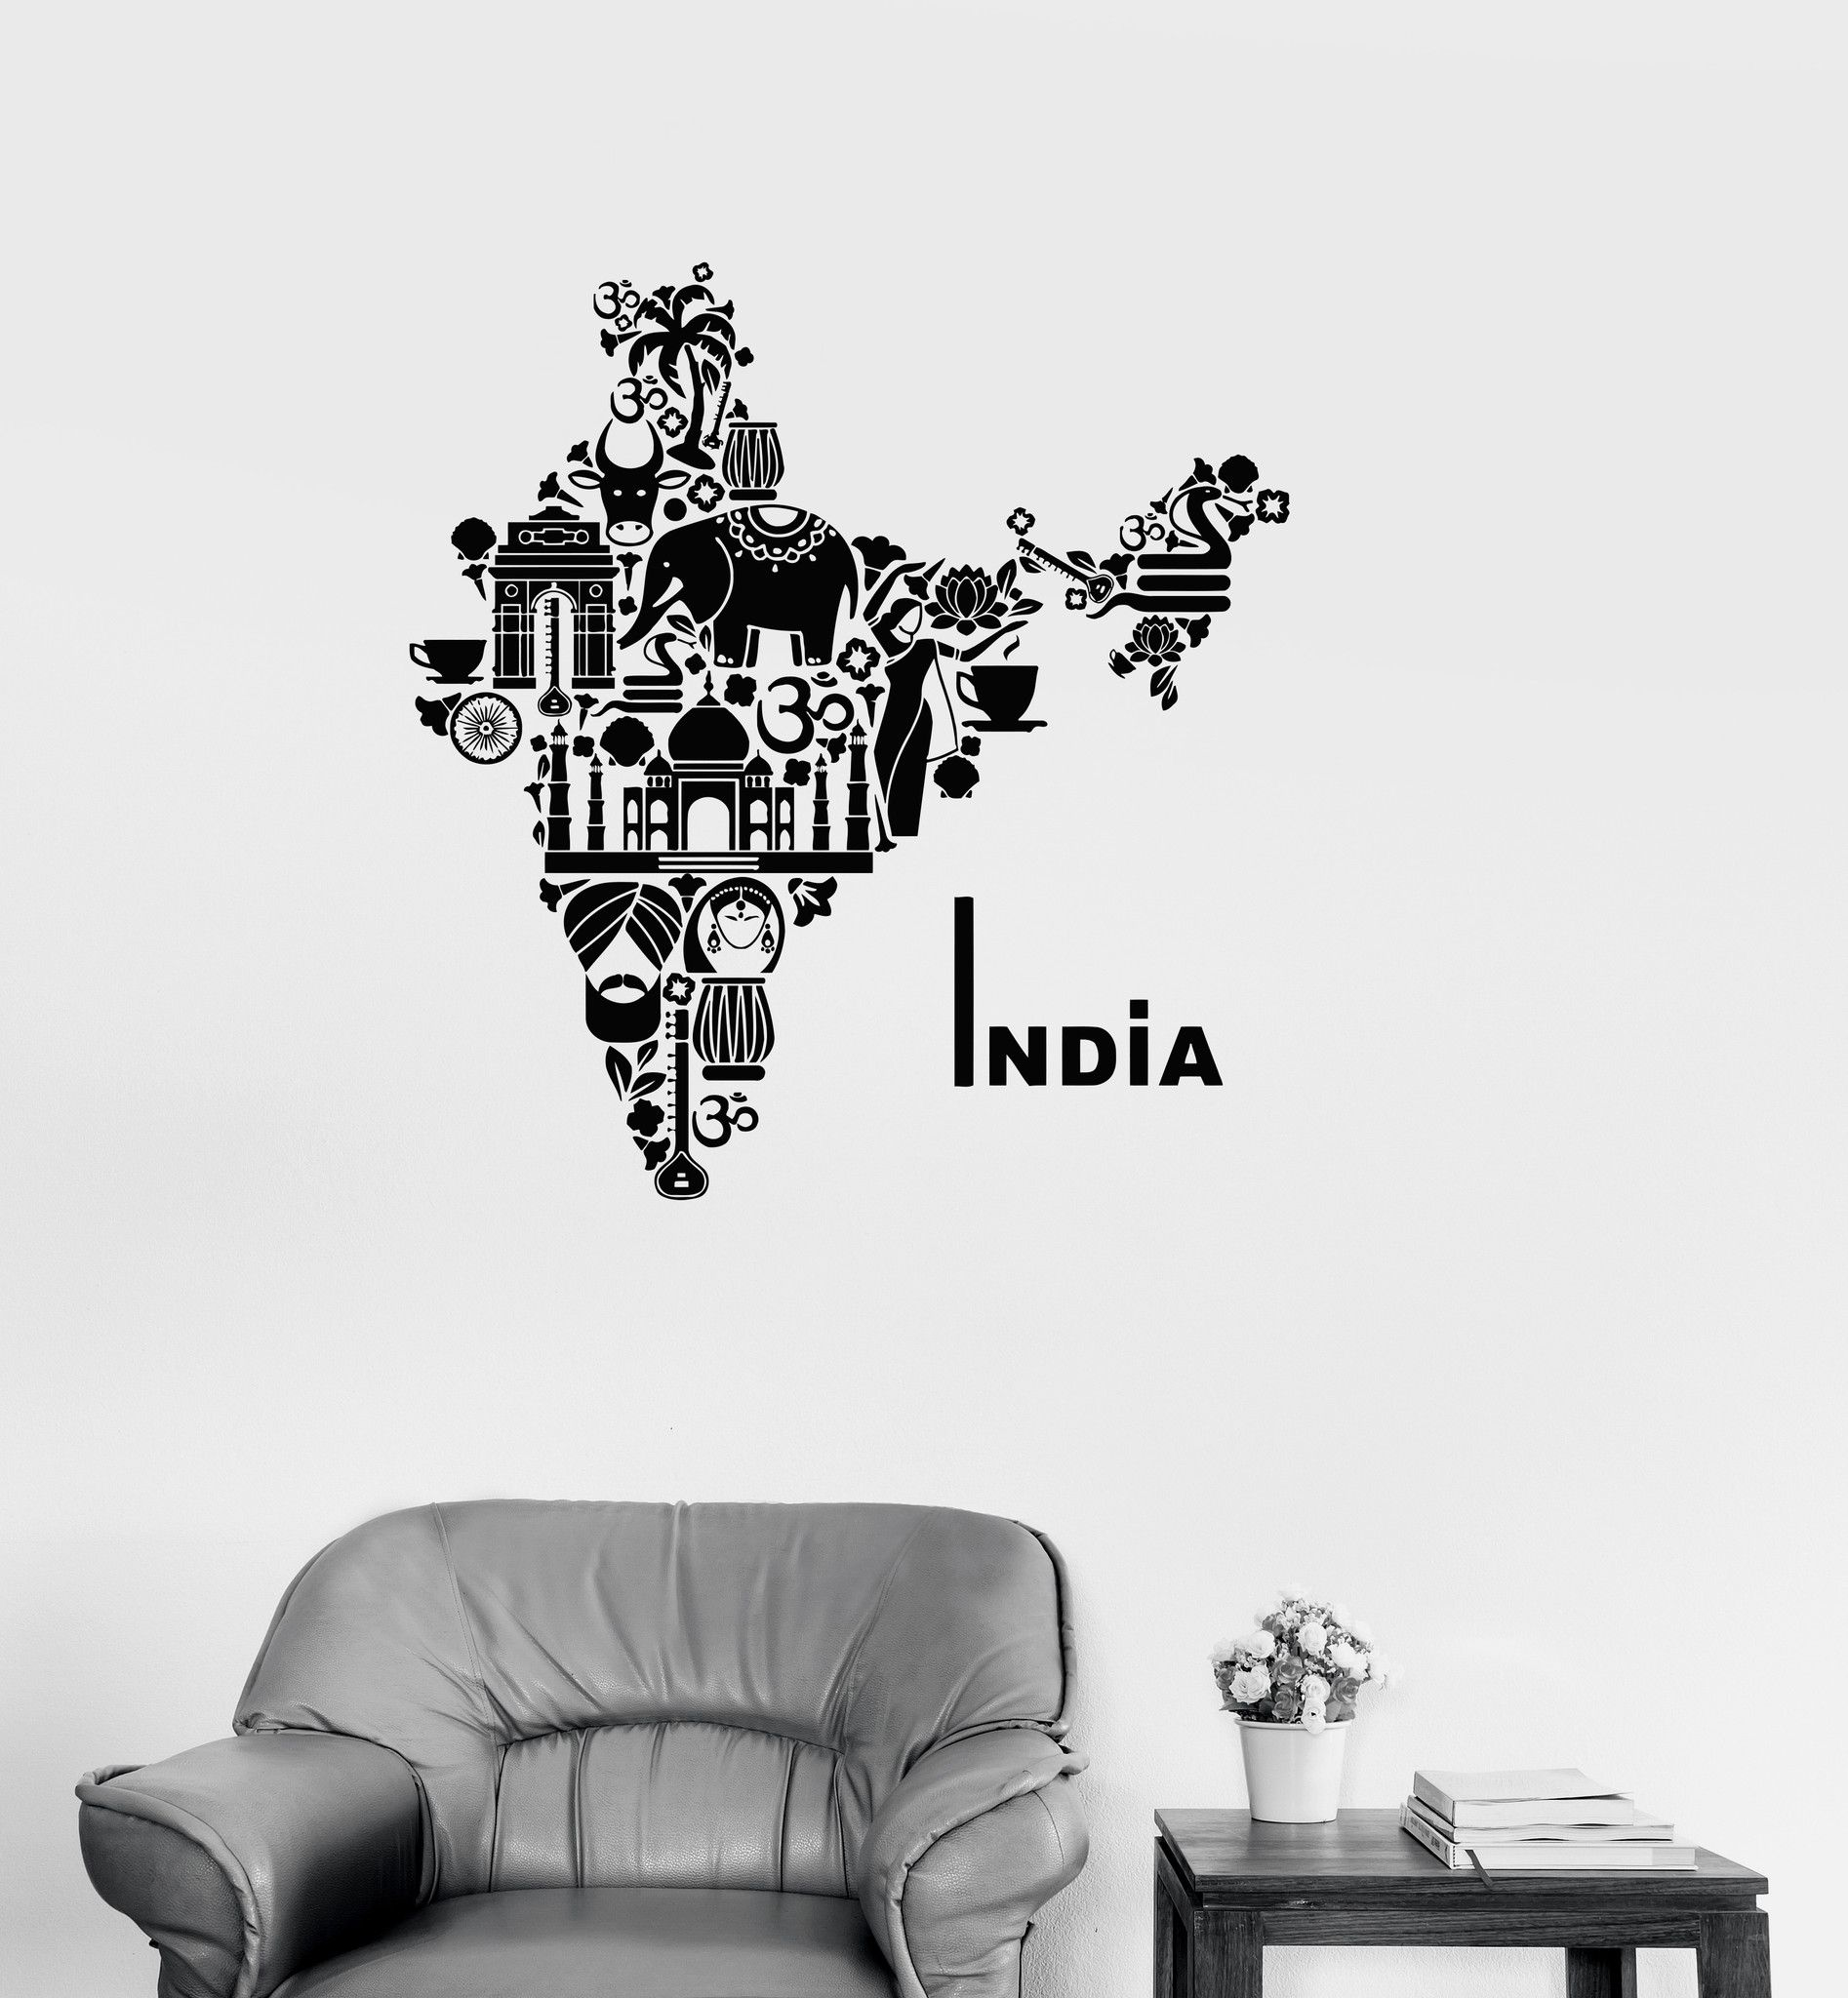 Large Wall Stickers For Living Room India Country Style Curtains Vinyl Decal Map Hindu Hinduism Elephant Symbols Decor Ig2722